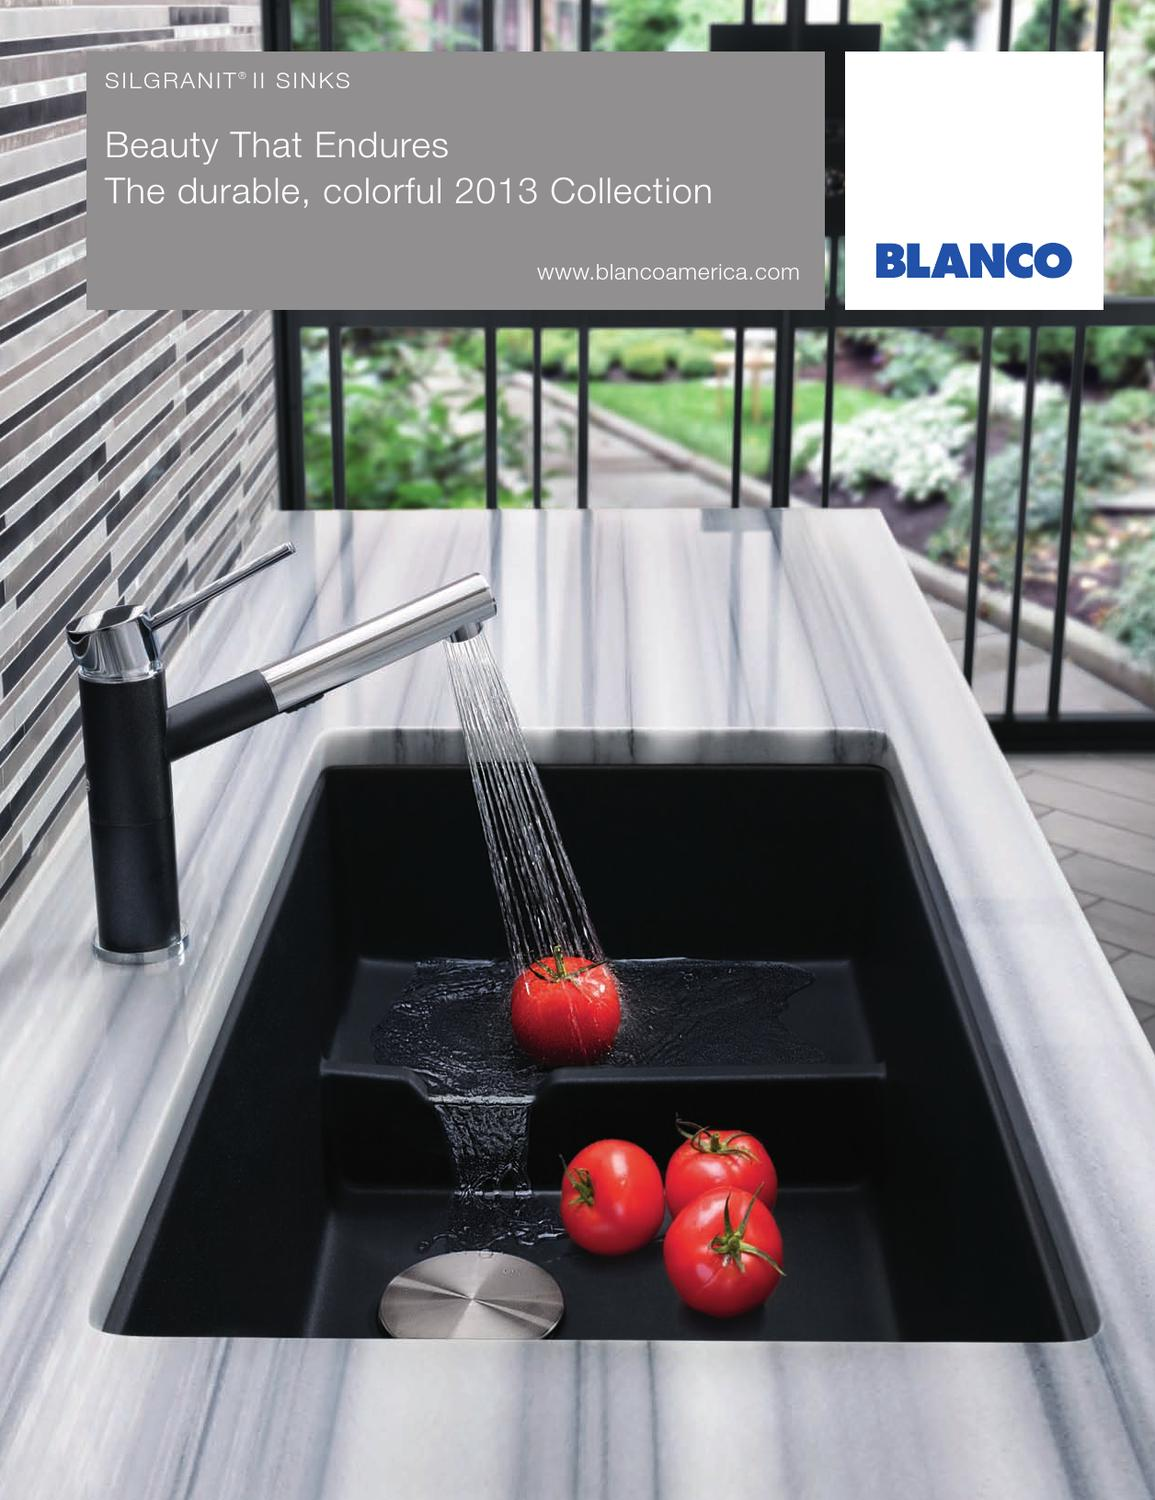 2013 blanco silgranit brochure by lori dolnick issuu for Blancoamerica com kitchen sinks